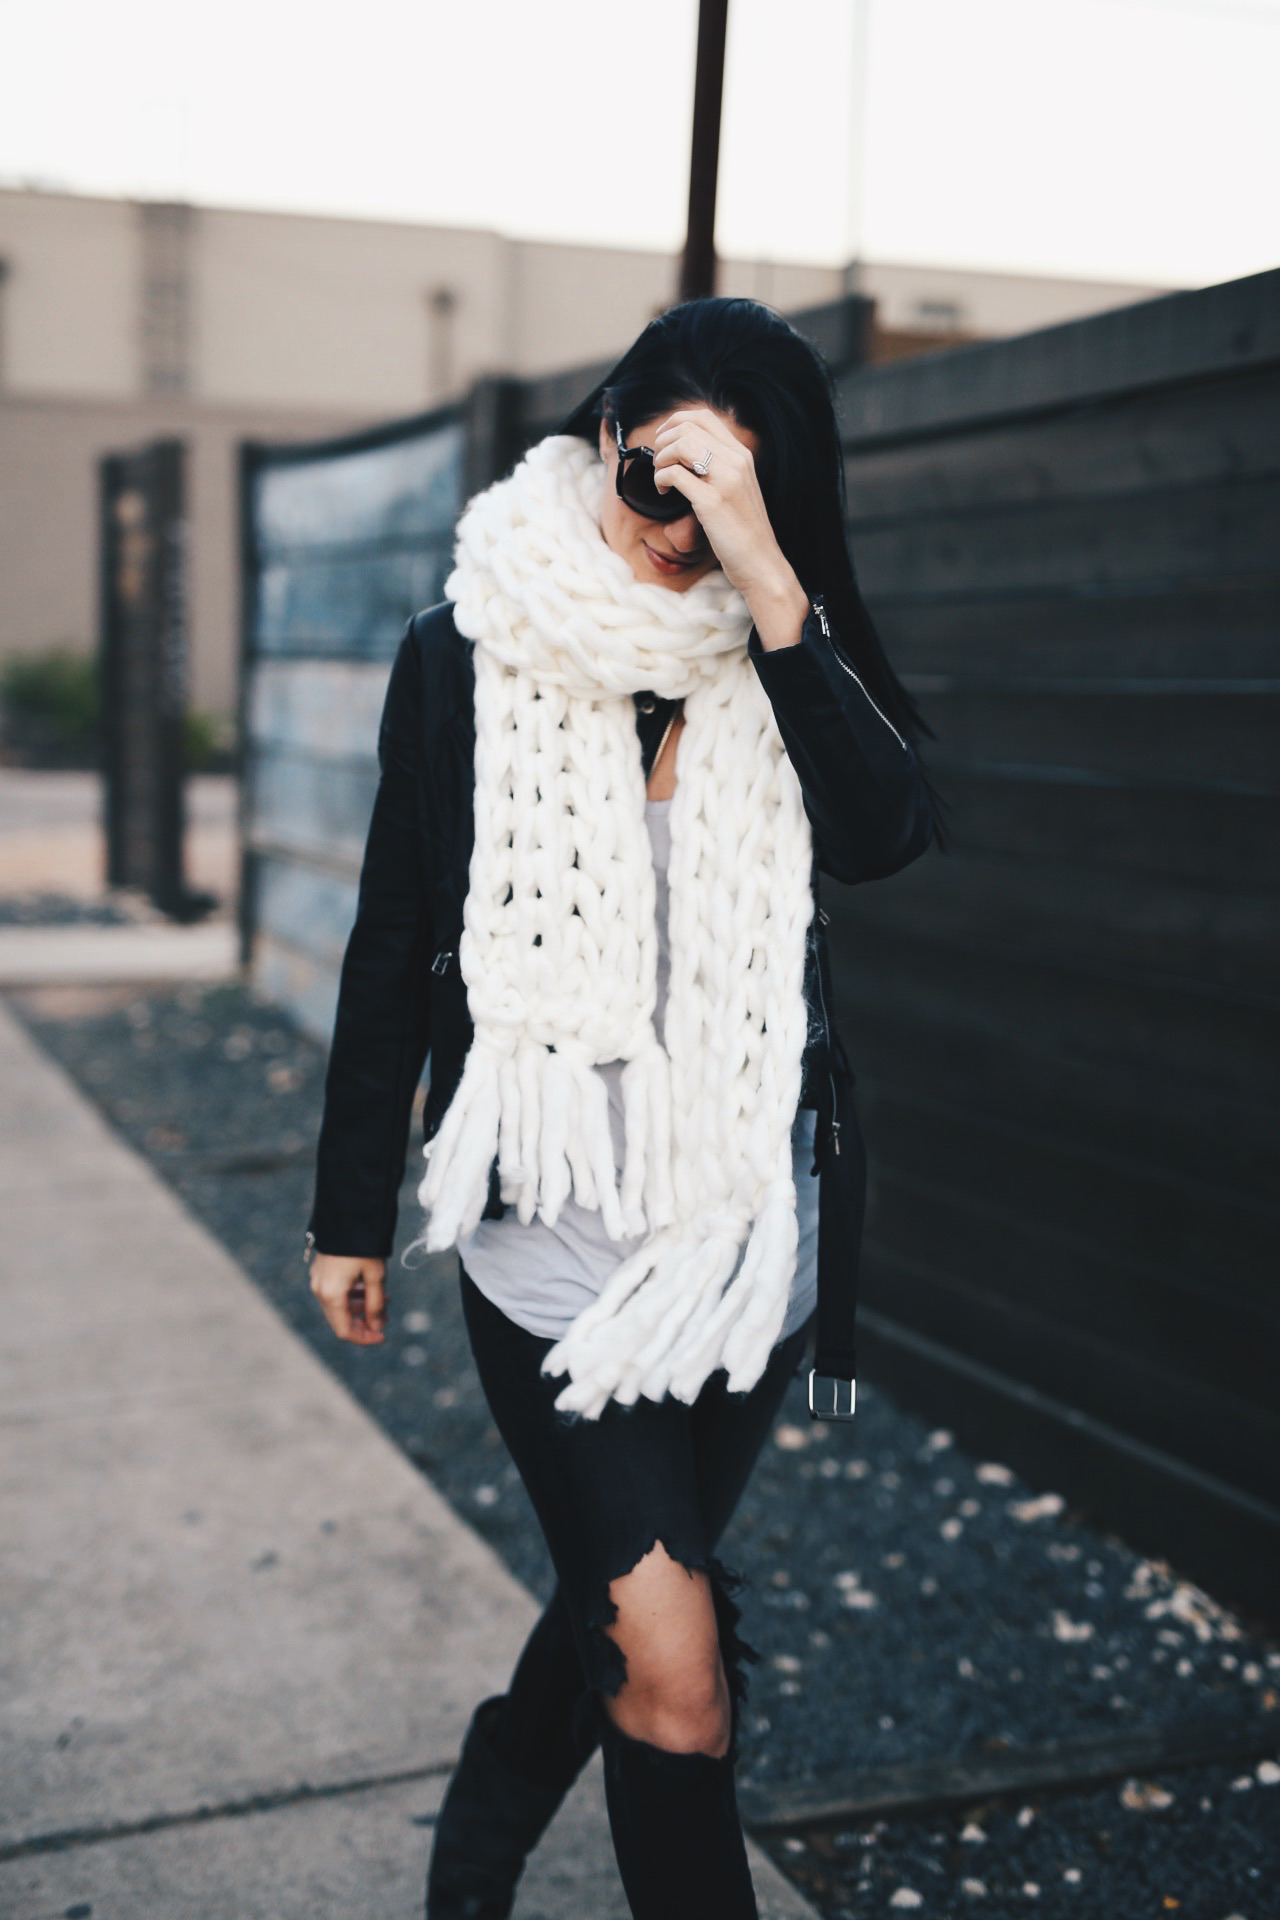 Ivory Chunky Knit Scarf | how to style a chunky knit scarf | how to wear a chunky knit scarf | chunky knit scarf style tips | fall scarves | scarves for fall and winter | fall fashion tips | fall outfit ideas | fall style tips | what to wear for fall | cool weather fashion | fashion for fall | style tips for fall | outfit ideas for fall || Dressed to Kill  #chunkyscarf #knitscarf #scarvesforwomen